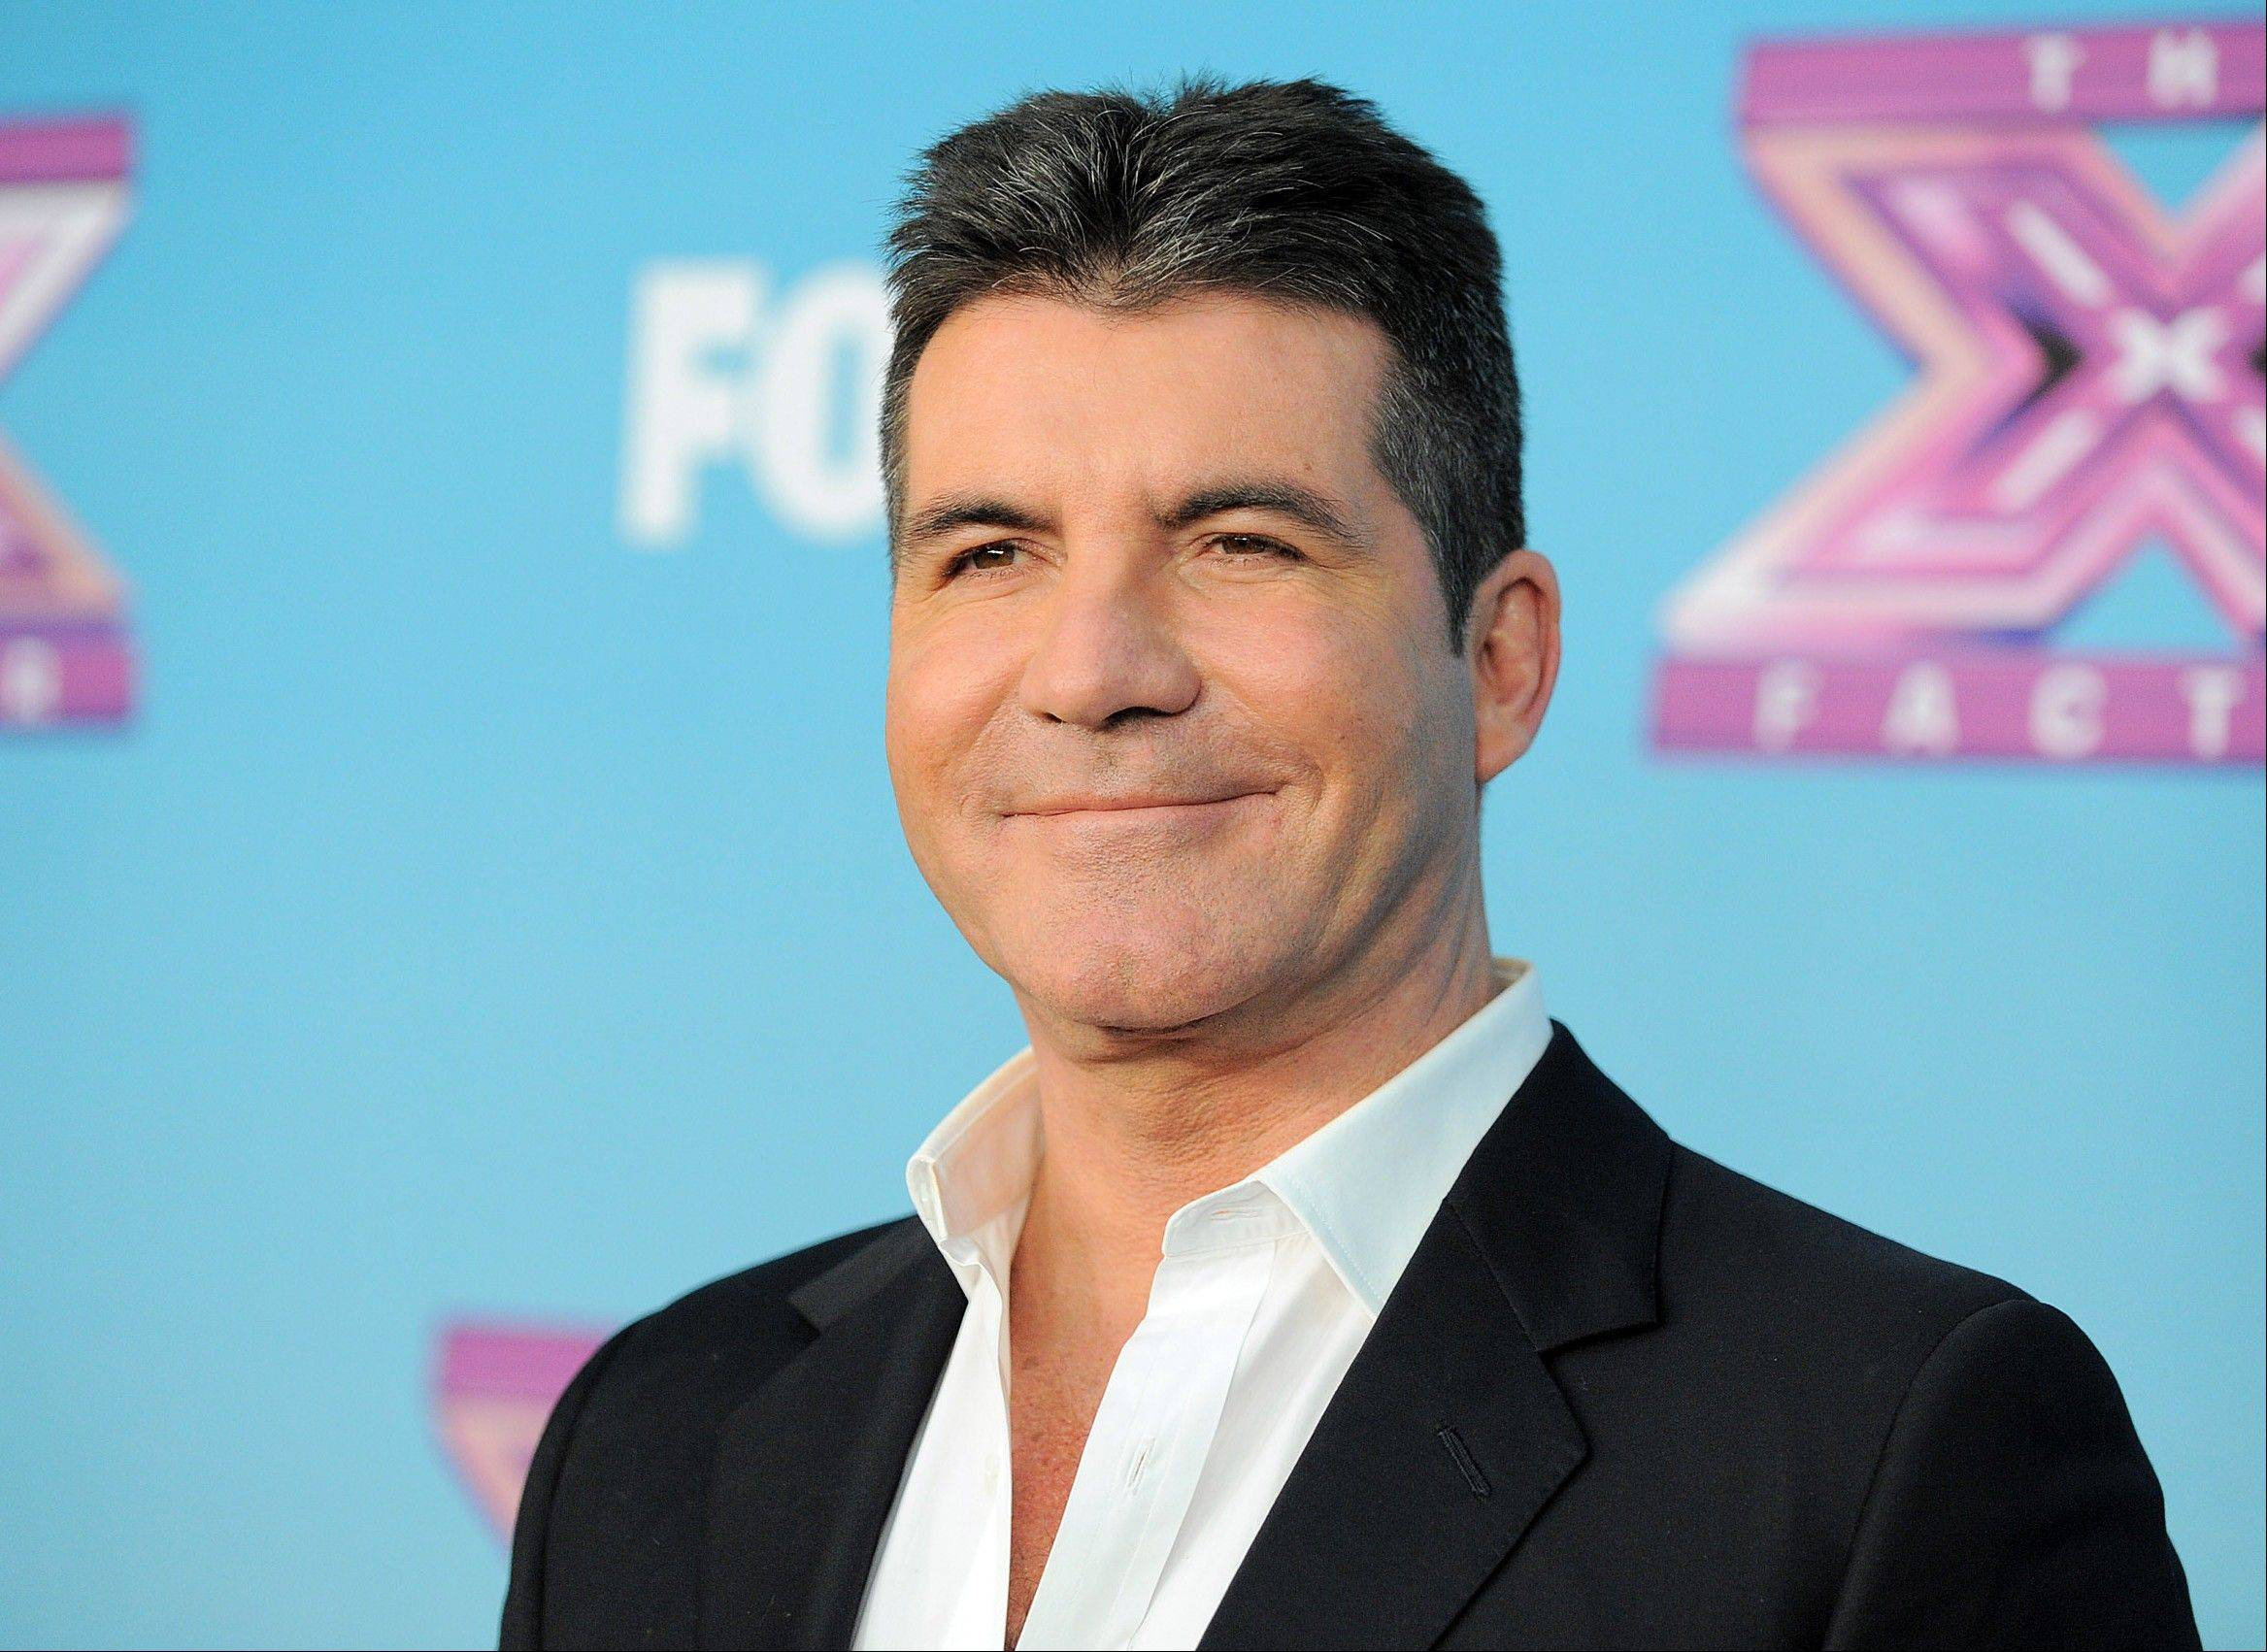 """You have to stay relevant in EACH decade,"" says mega-impresario Simon Cowell of the many reality talent shows he's had a hand in."